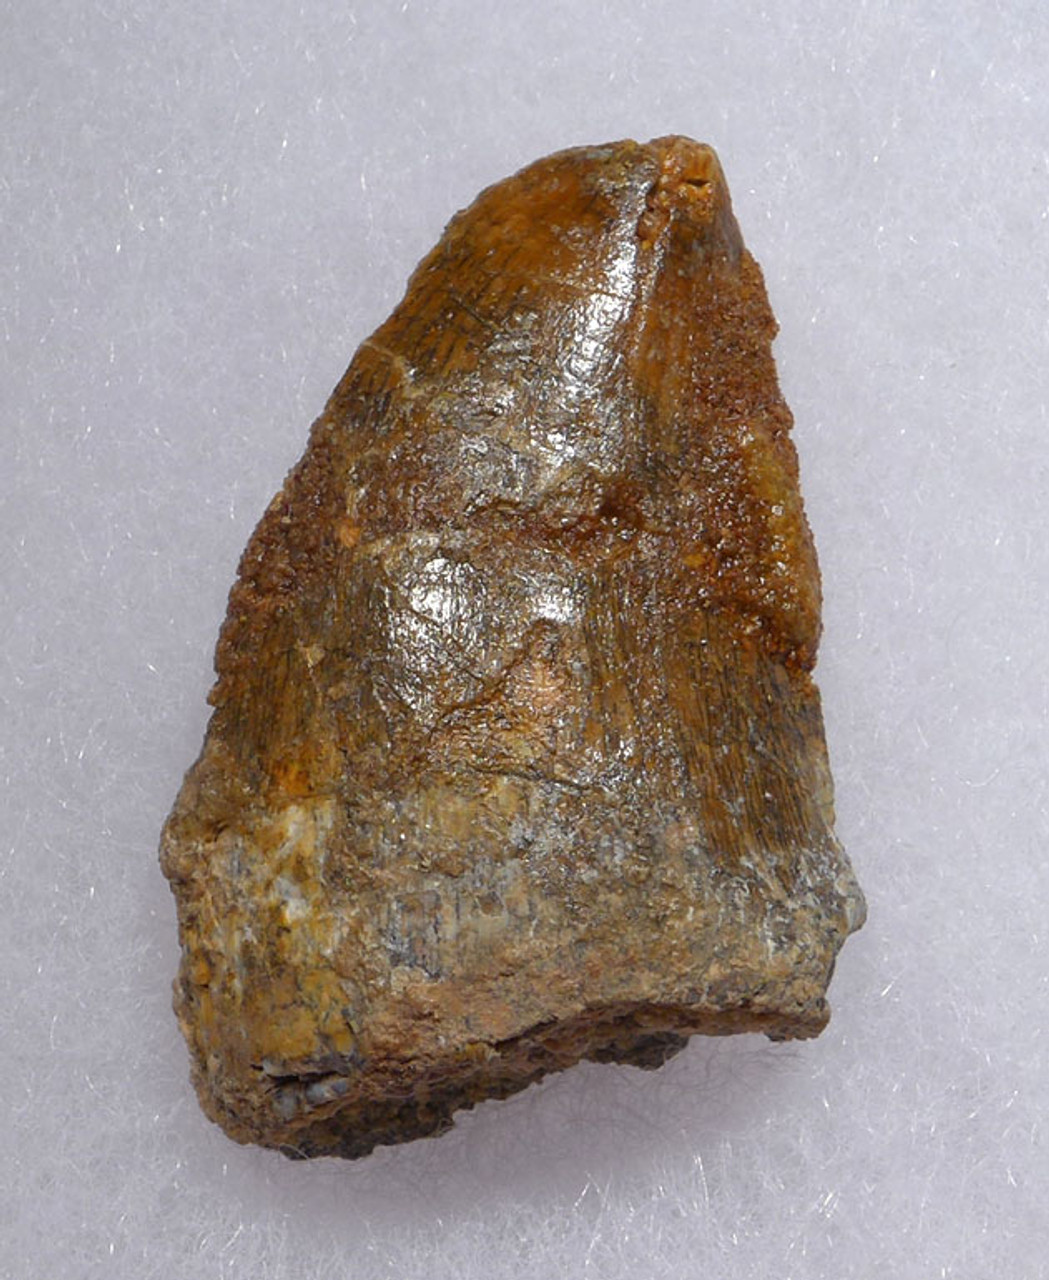 DT2-094 - CARCHARODONTOSAURUS FOSSIL TOOTH FROM THE LARGEST MEAT-EATING DINOSAUR